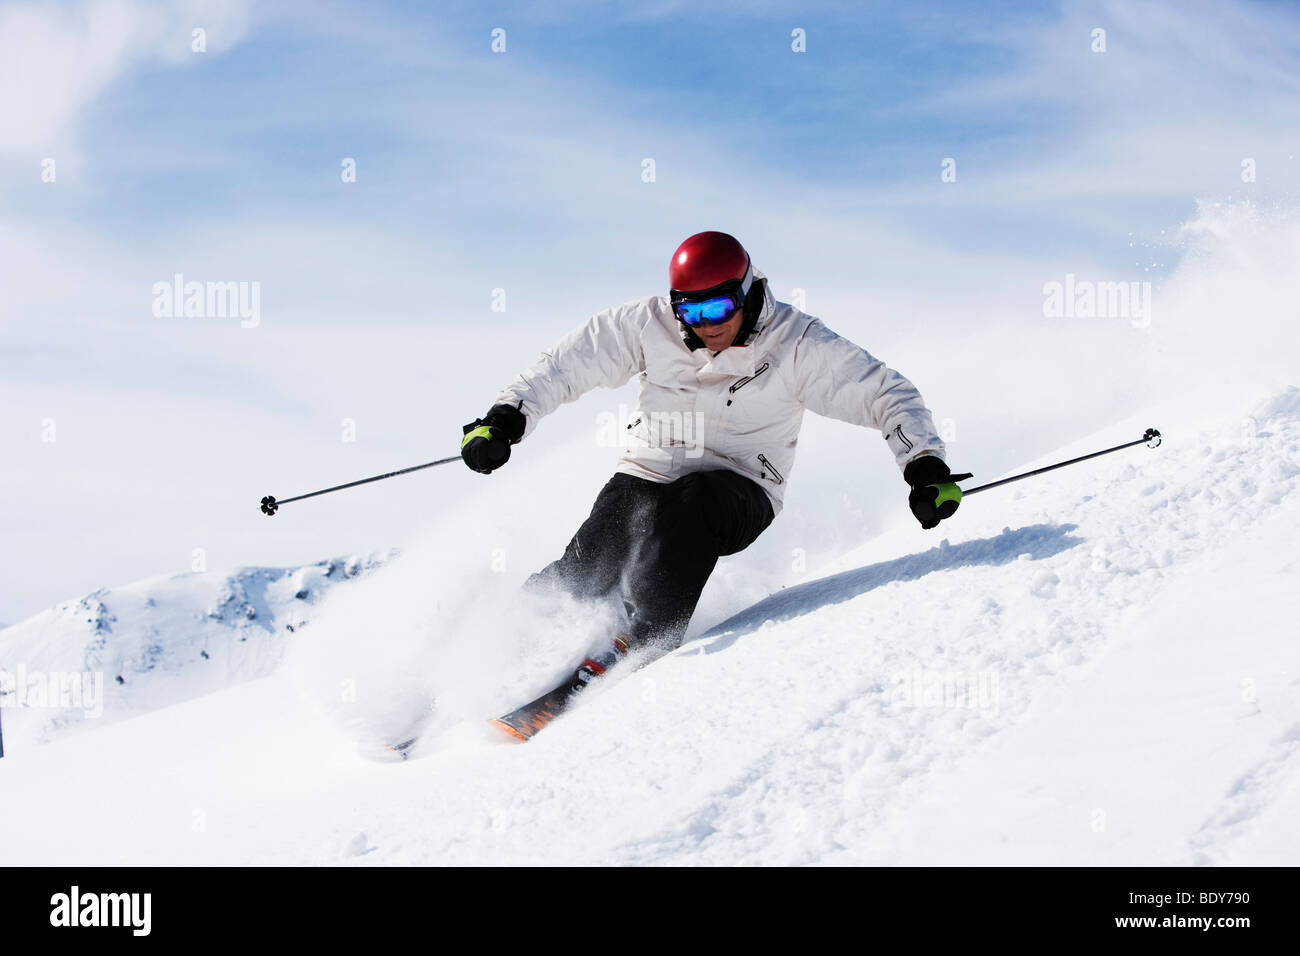 Man in white with red helmet off-piste. - Stock Image